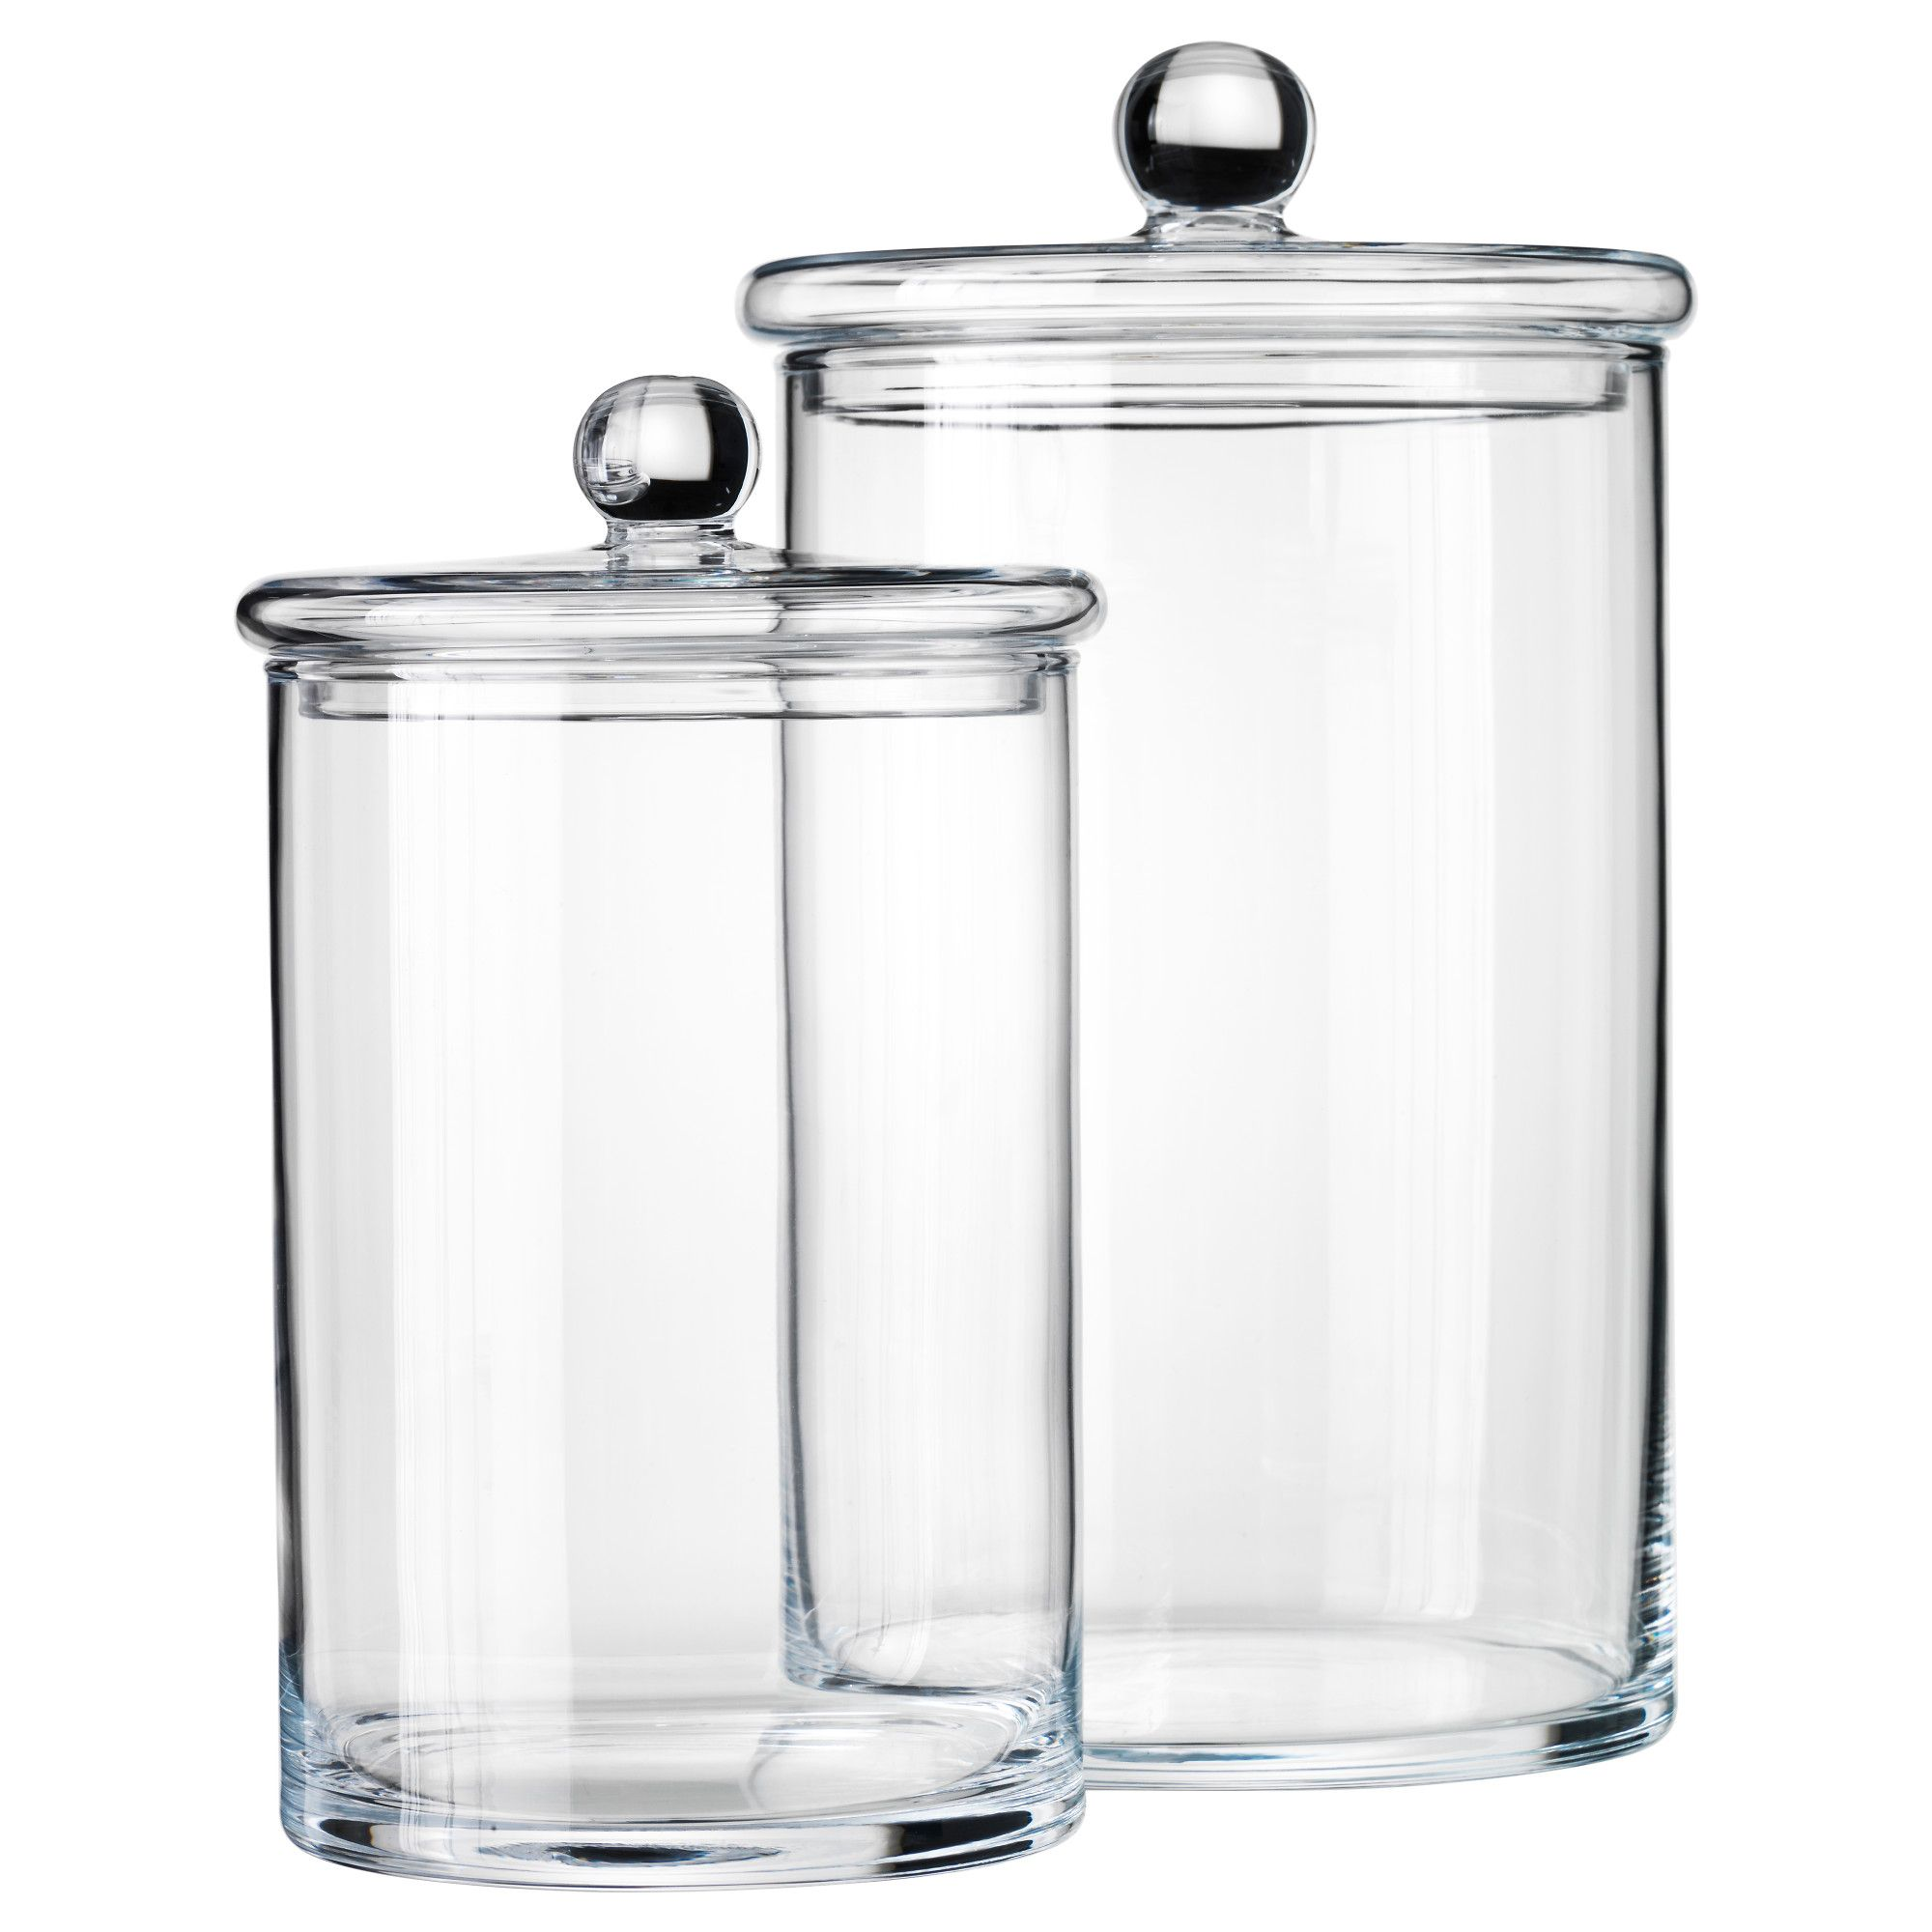 Ikea Gläser Mit Deckel ryssby 2014 jar with lid set of 2 ikea awesome stuff